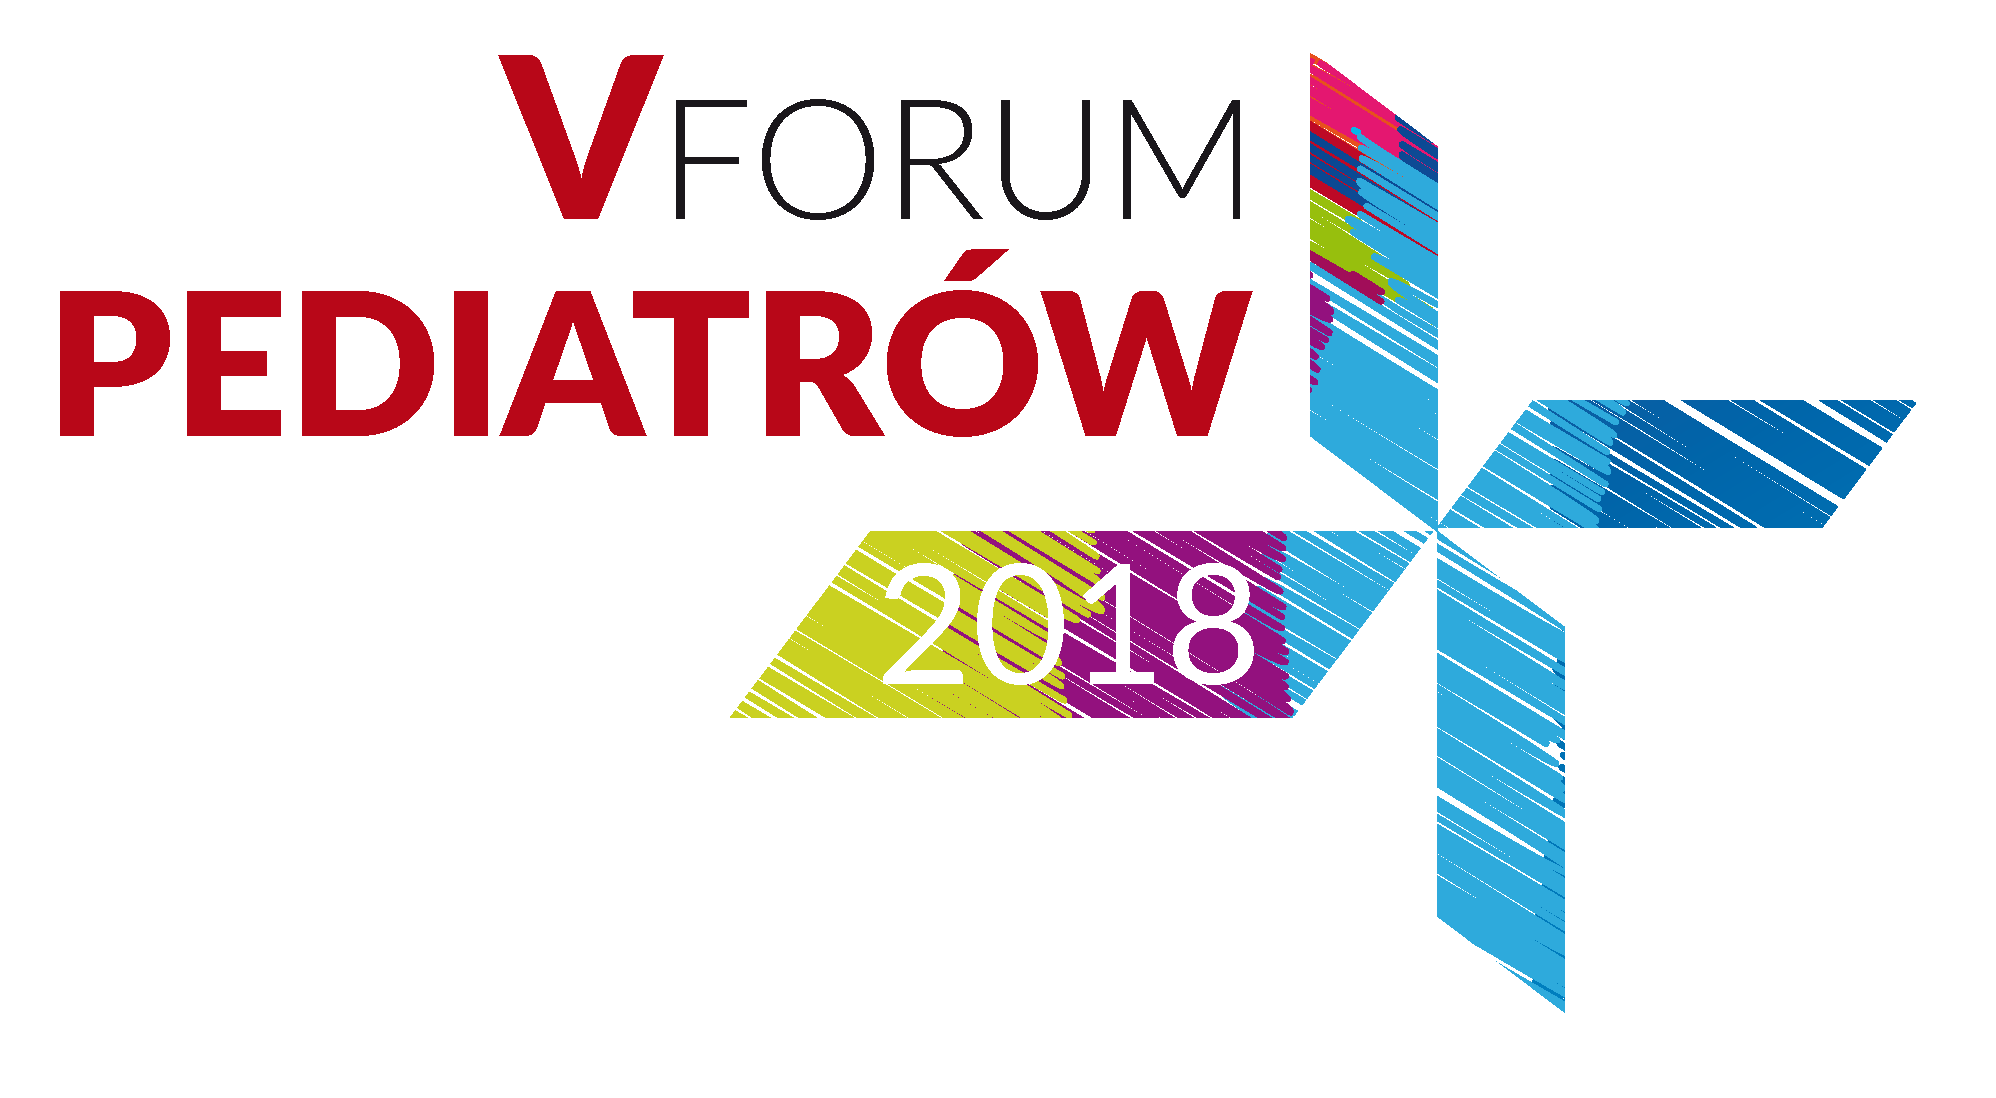 V Forum Pediatrów 2018